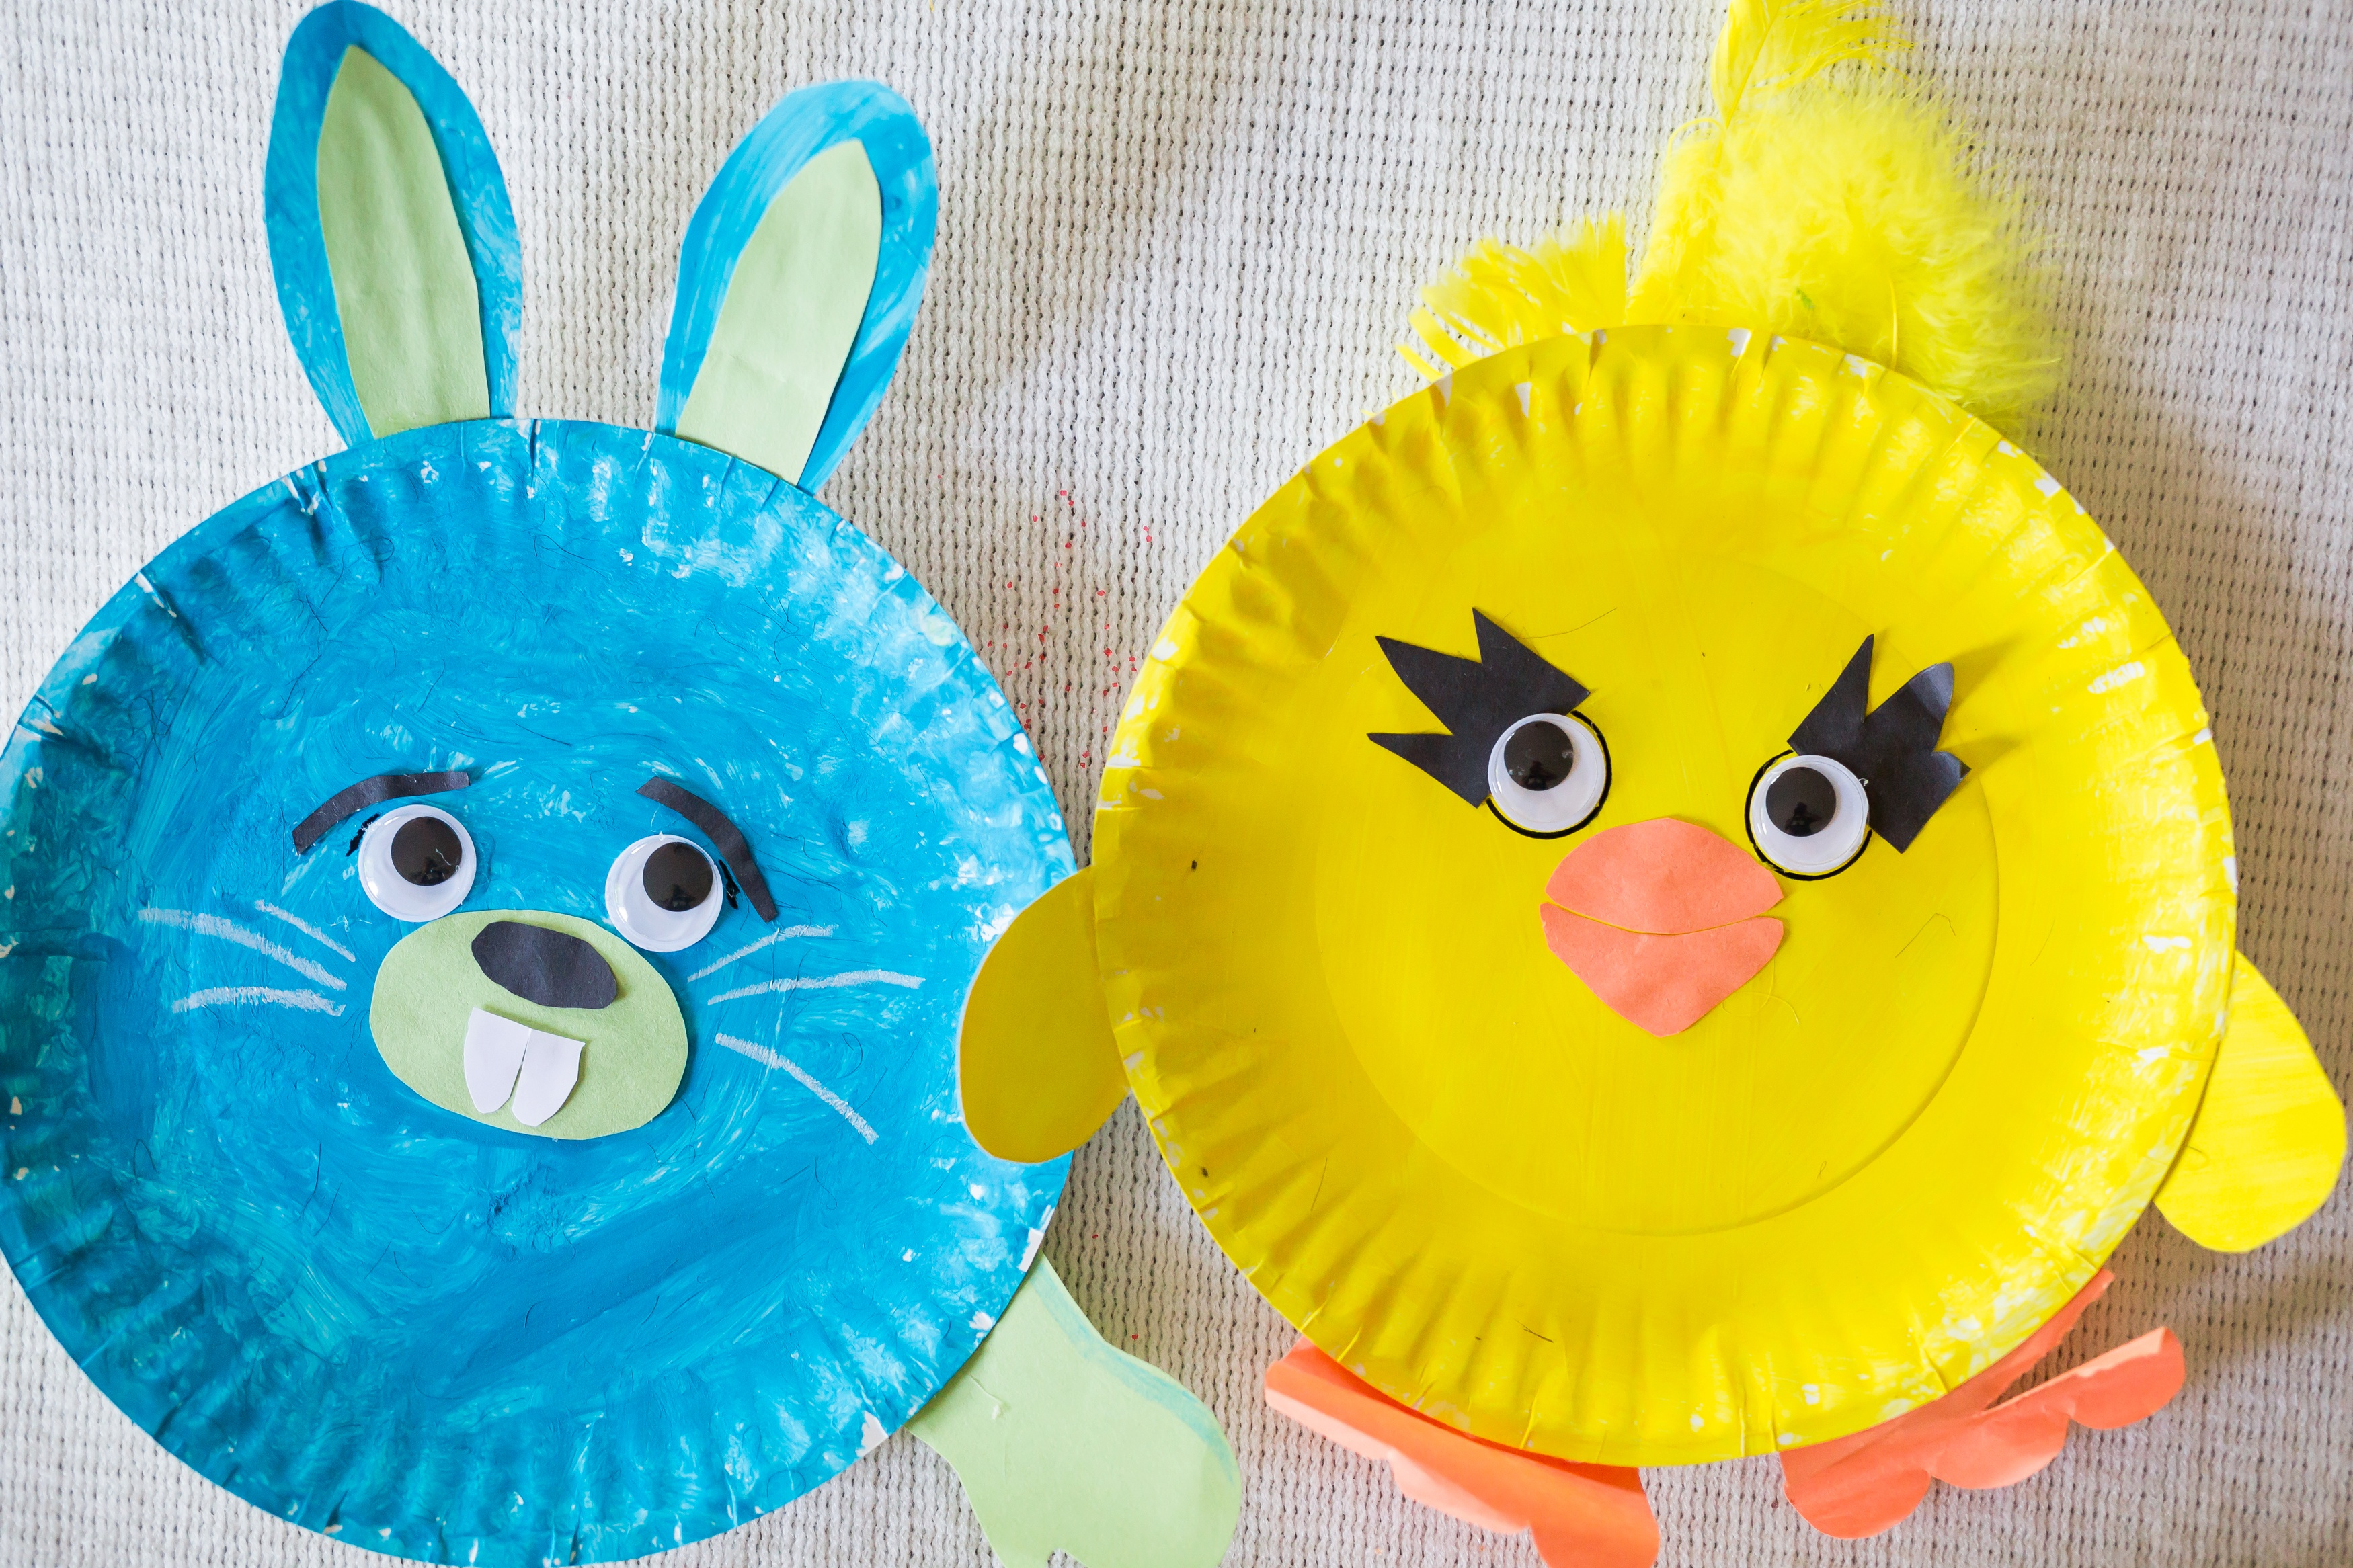 DIY Ducky and Bunny Paper Plate Craft Toy Story 4, Toy Story 4 Craft, Magic for Miles